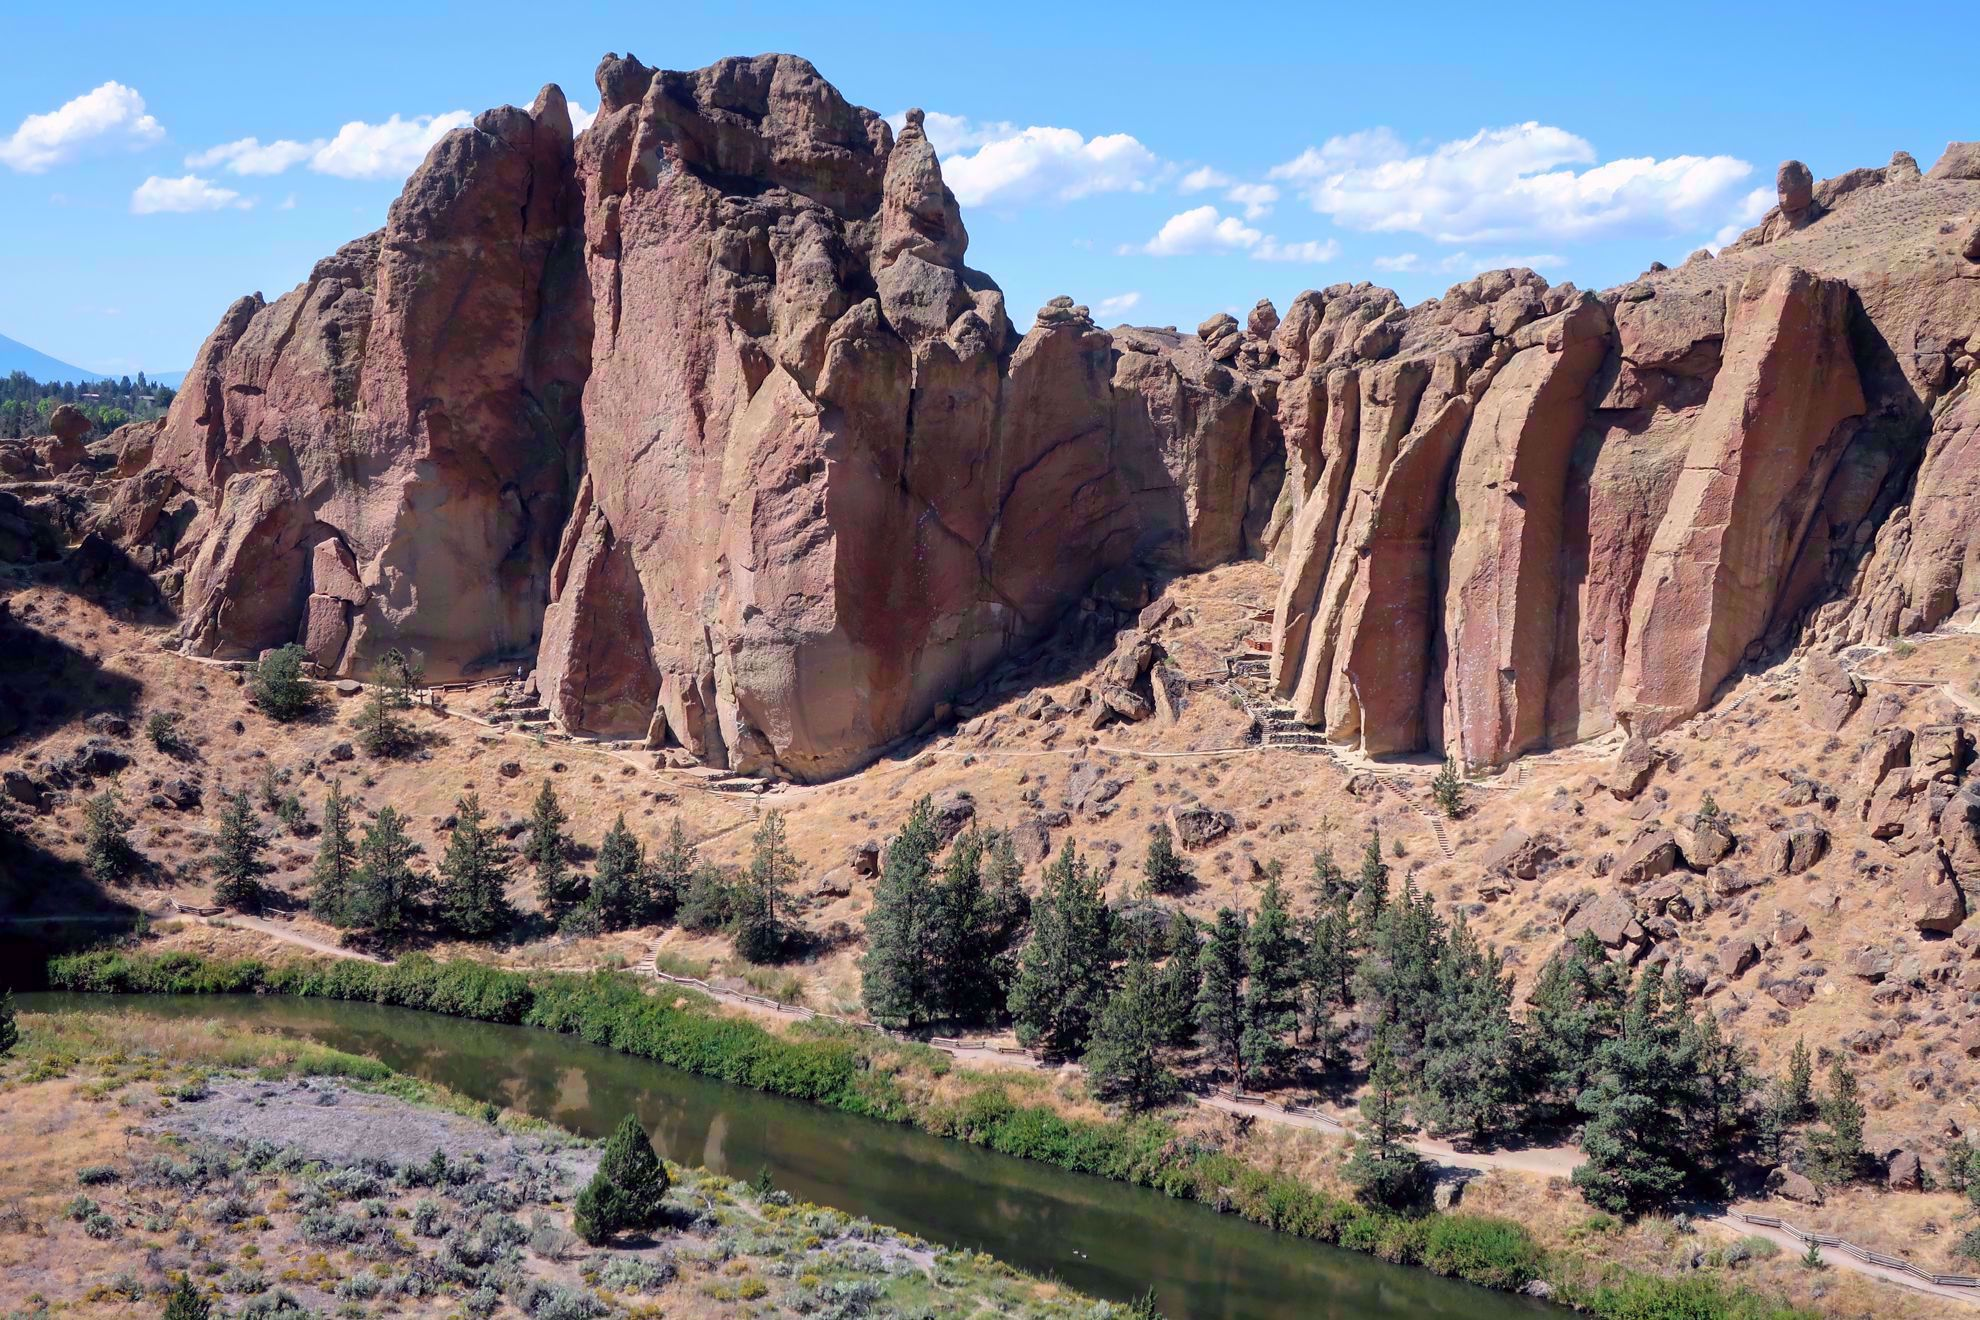 Smith Rock hiking area